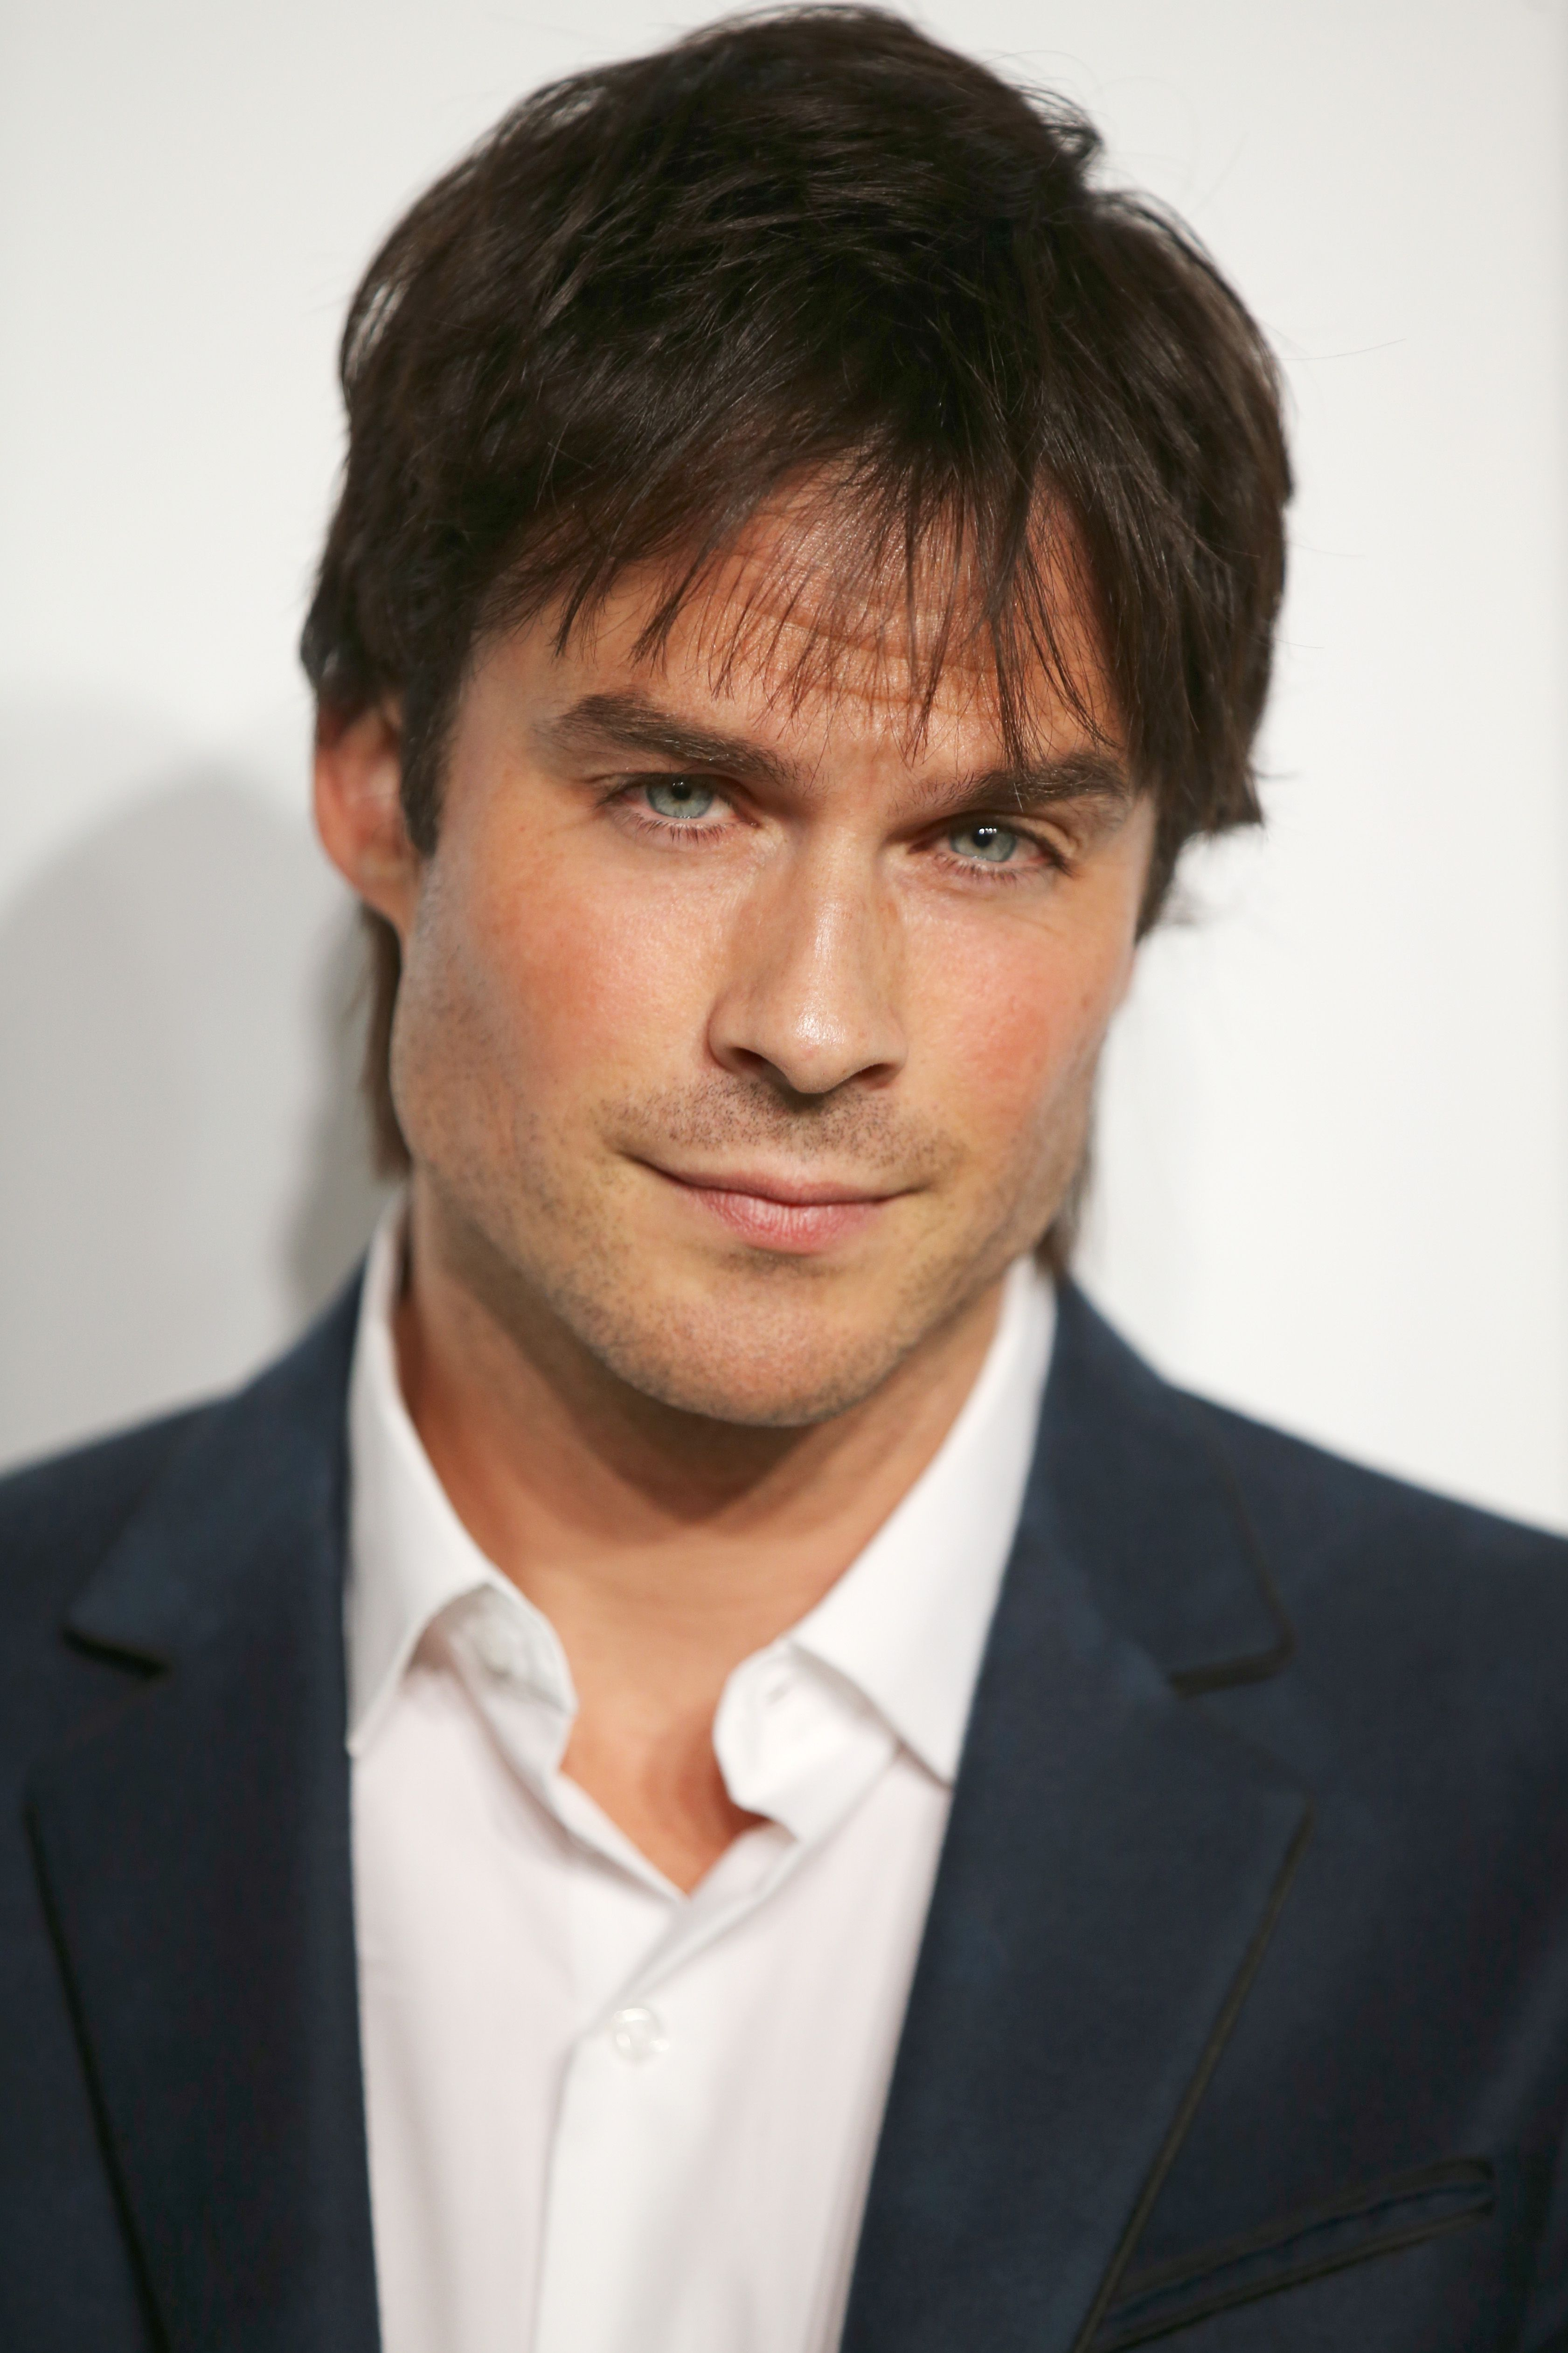 Ian somerhalder - one day